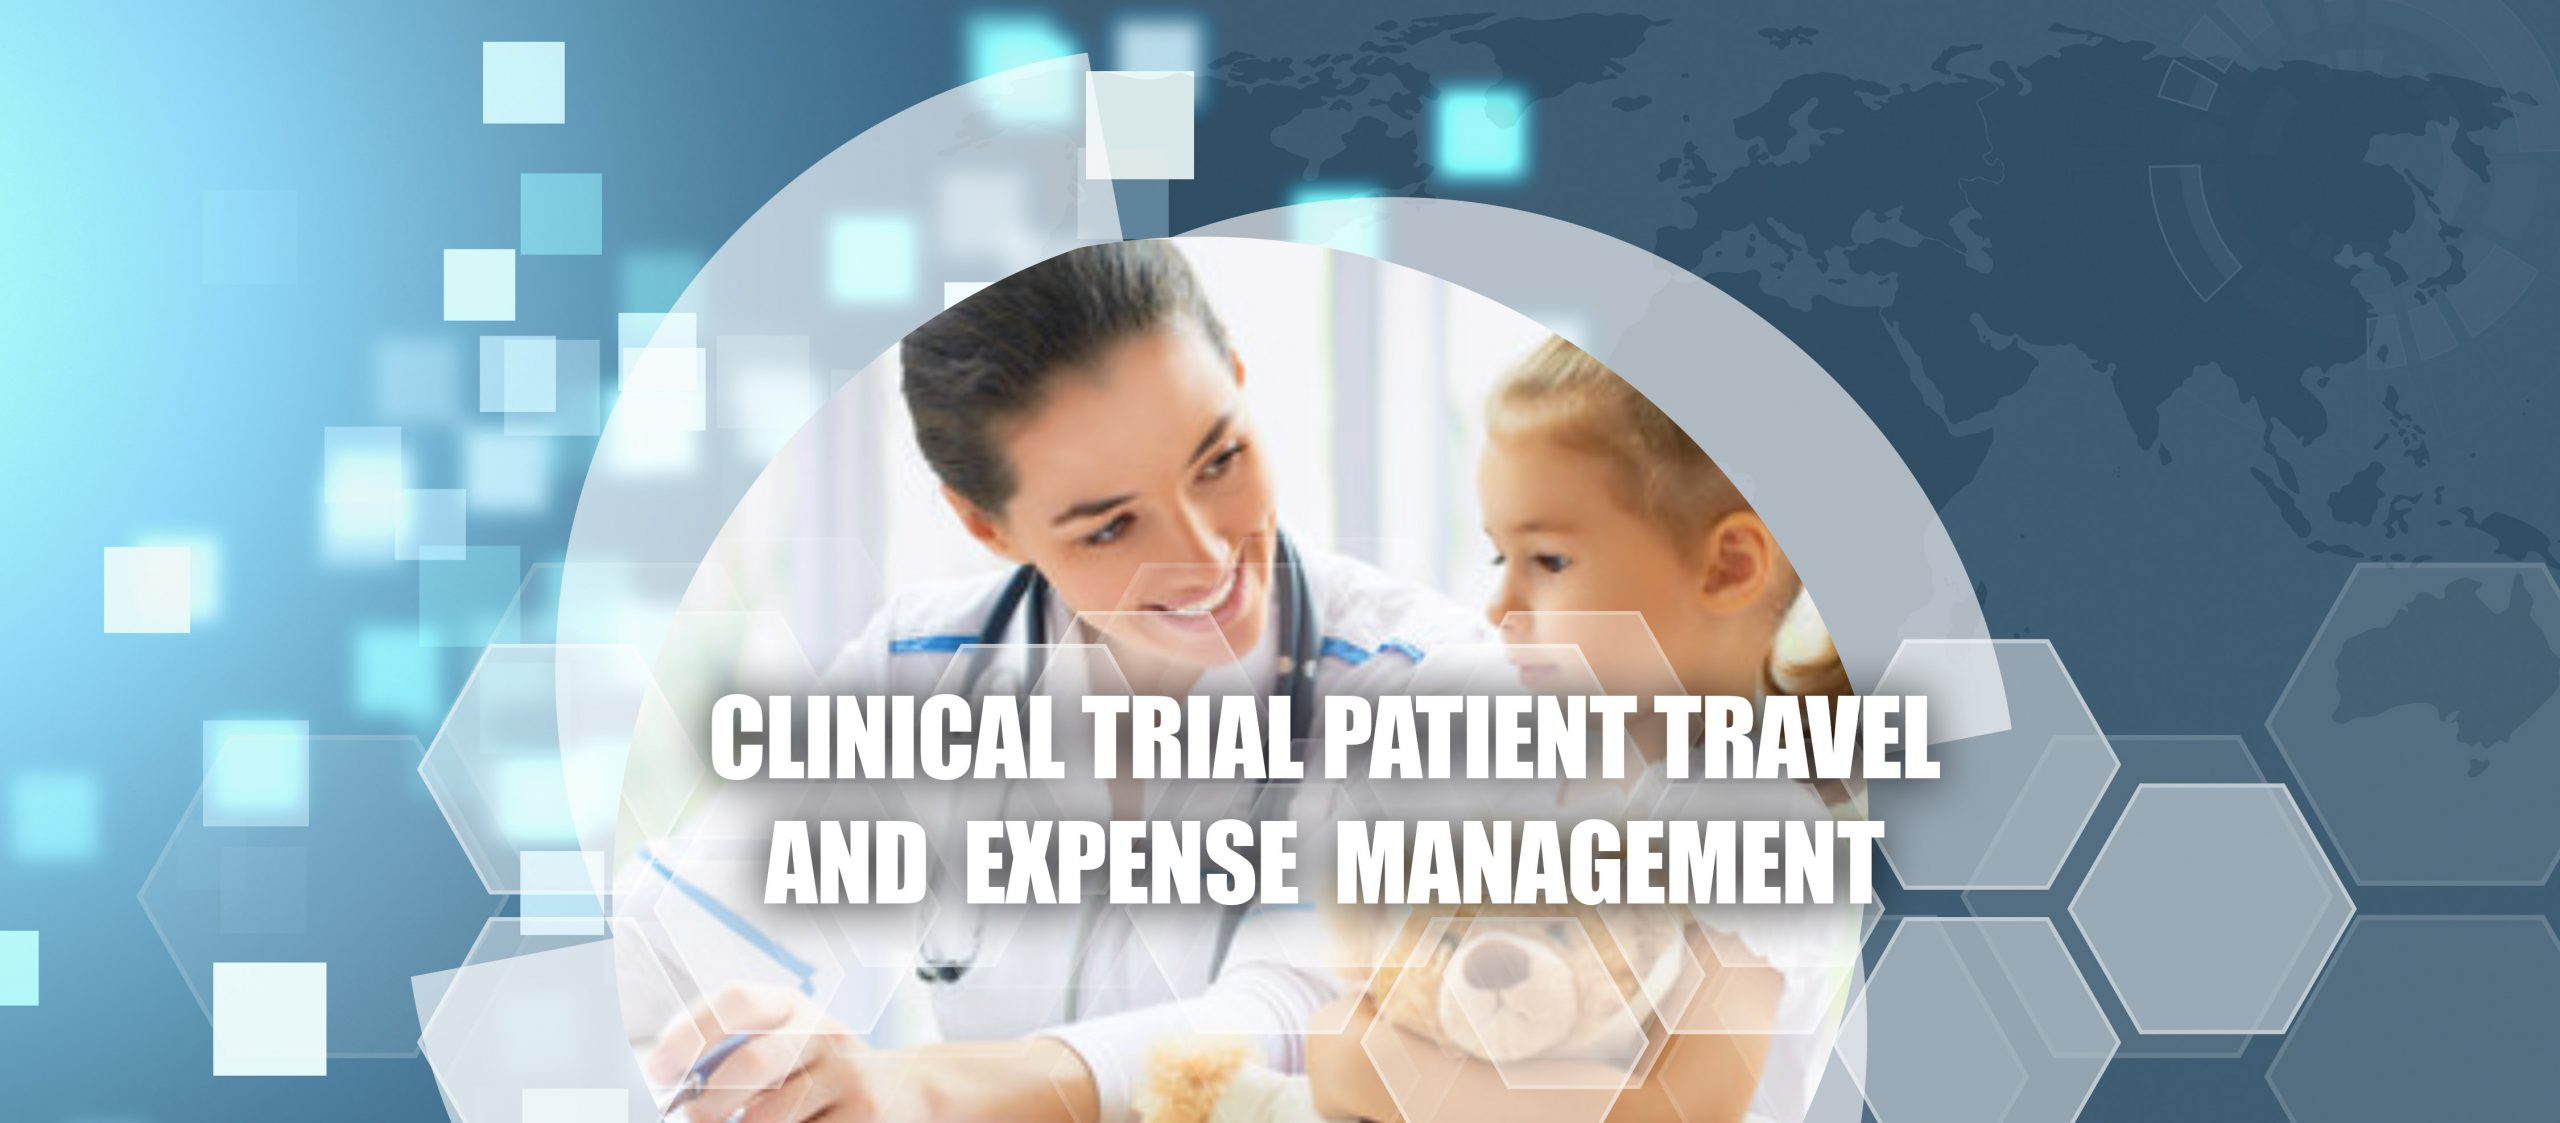 Colpitts Clinical - clinical trial patient travel and expense management